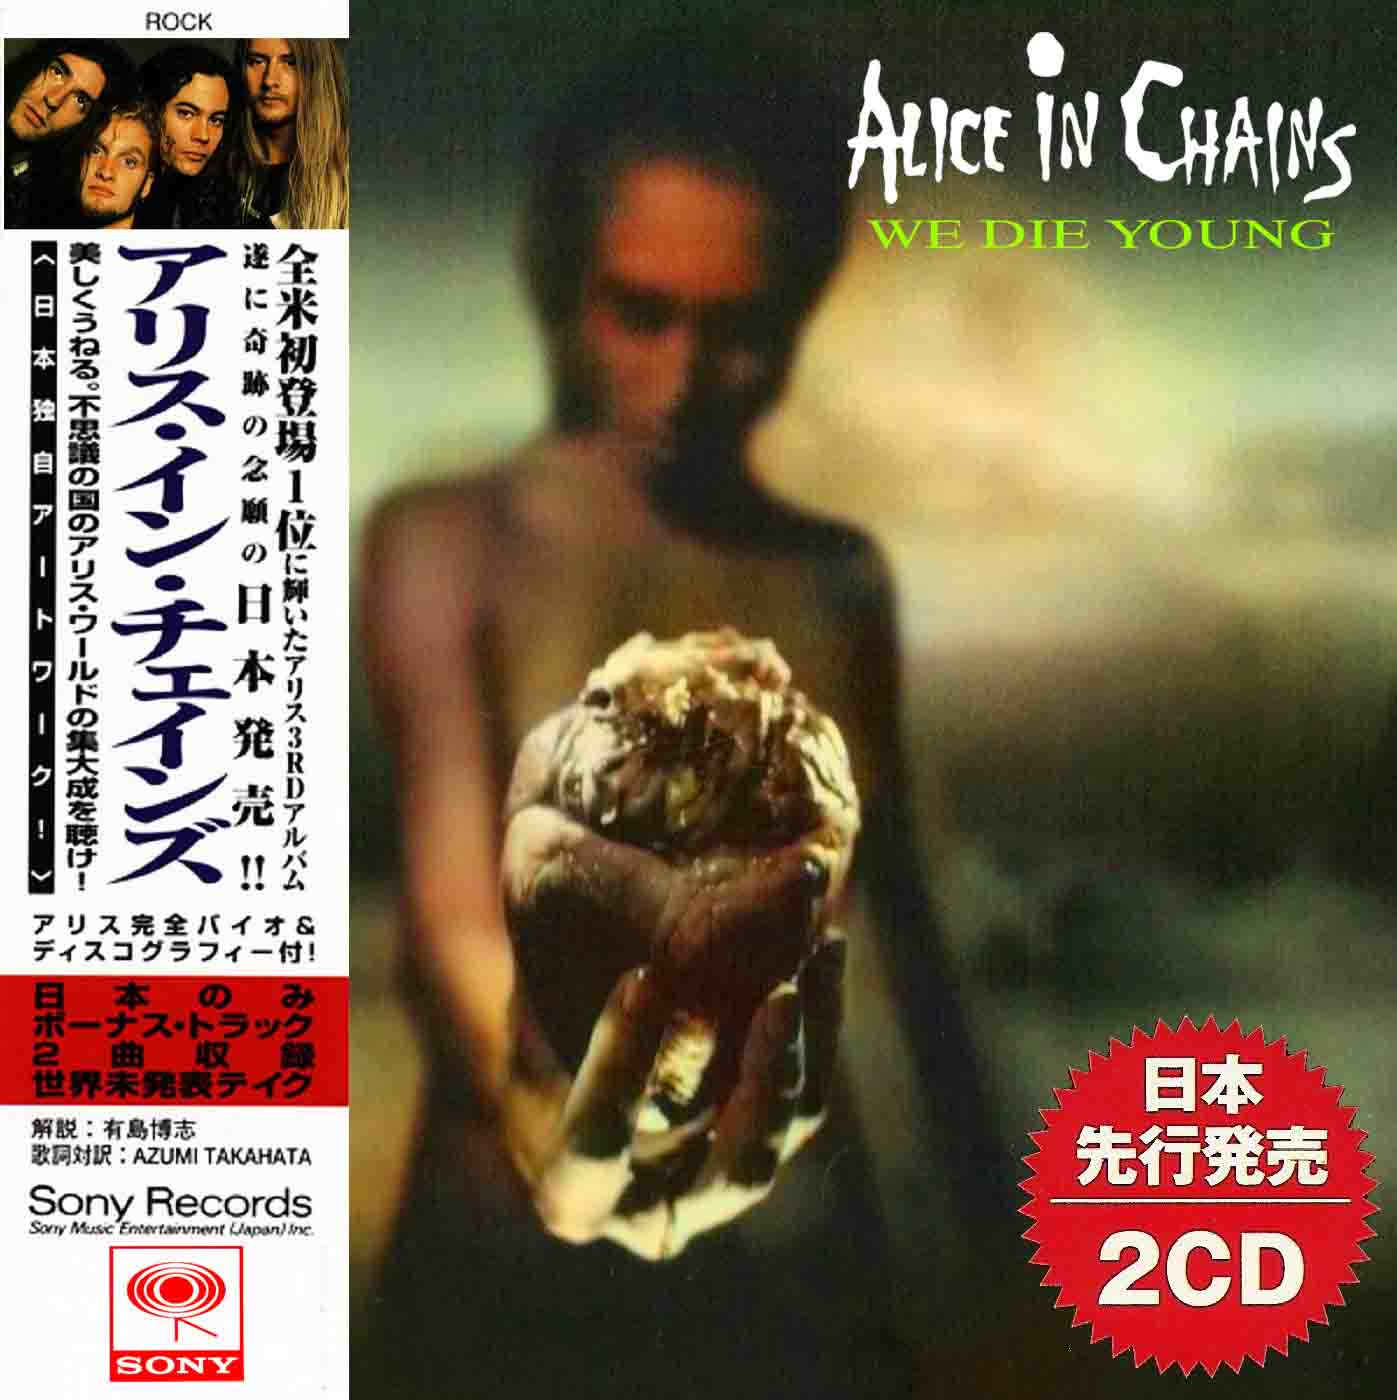 Alice In Chains - We Die Young (Compilation) (Japanese Edition)